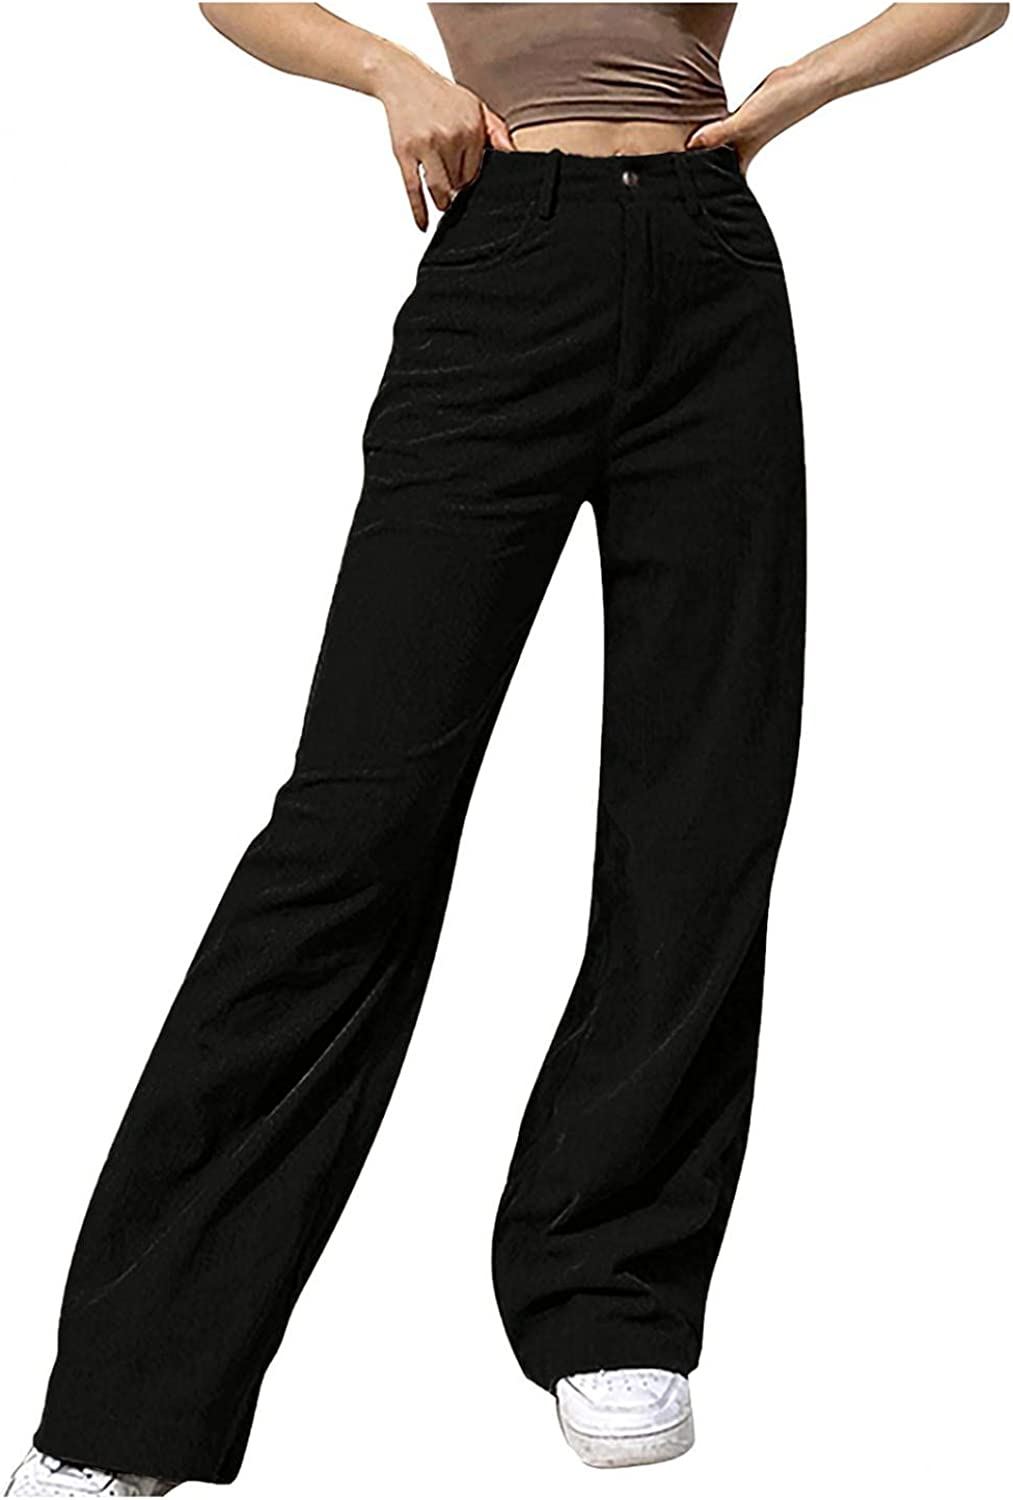 UQGHQO Jeans for Women, Womens Casual Solid Color Wide Leg Mid Waisted Pants Baggy Trousers Fashion Straight Denim Jeans